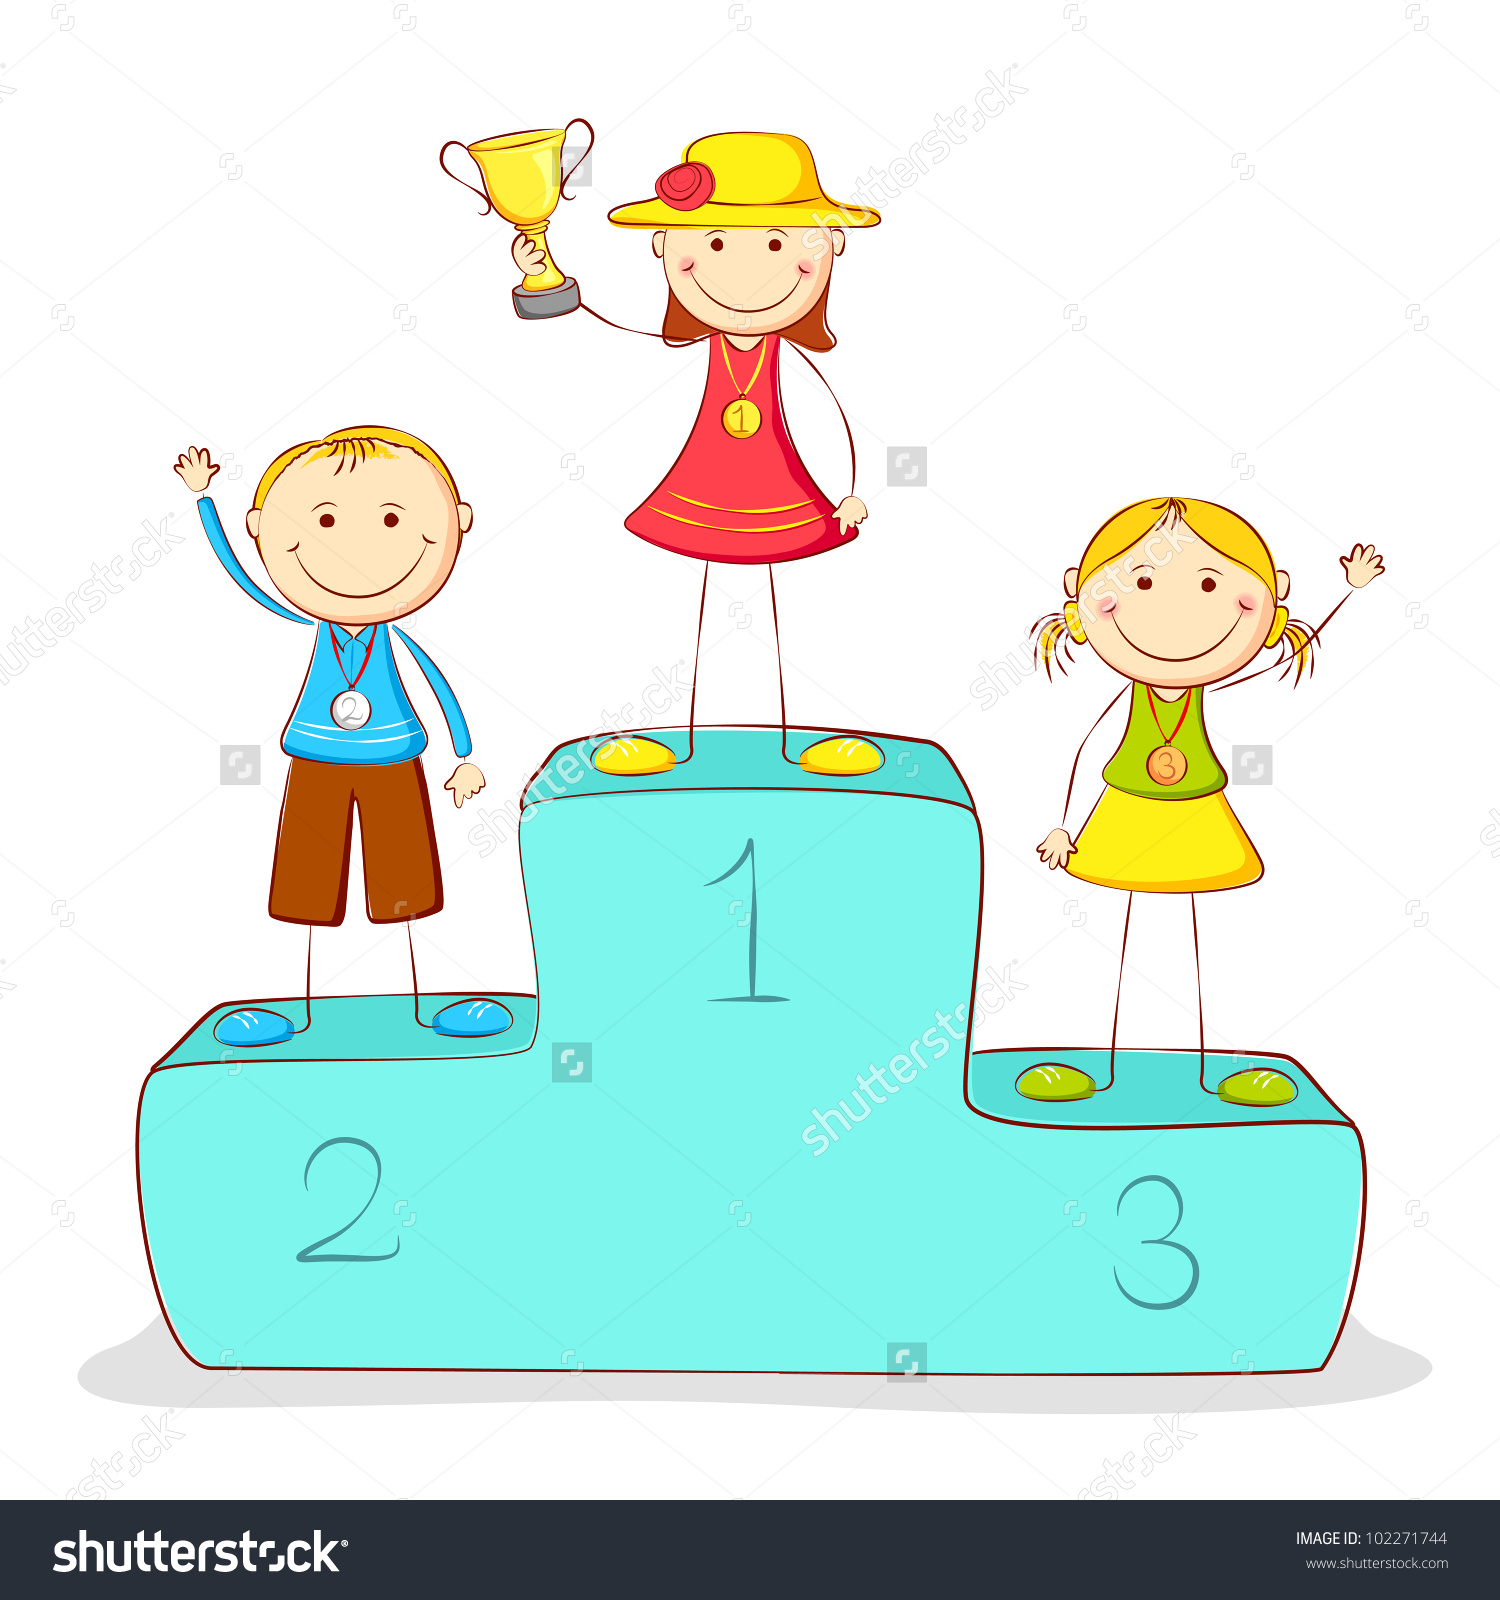 Winning clipart victory stand Collection Standing standing Victory On